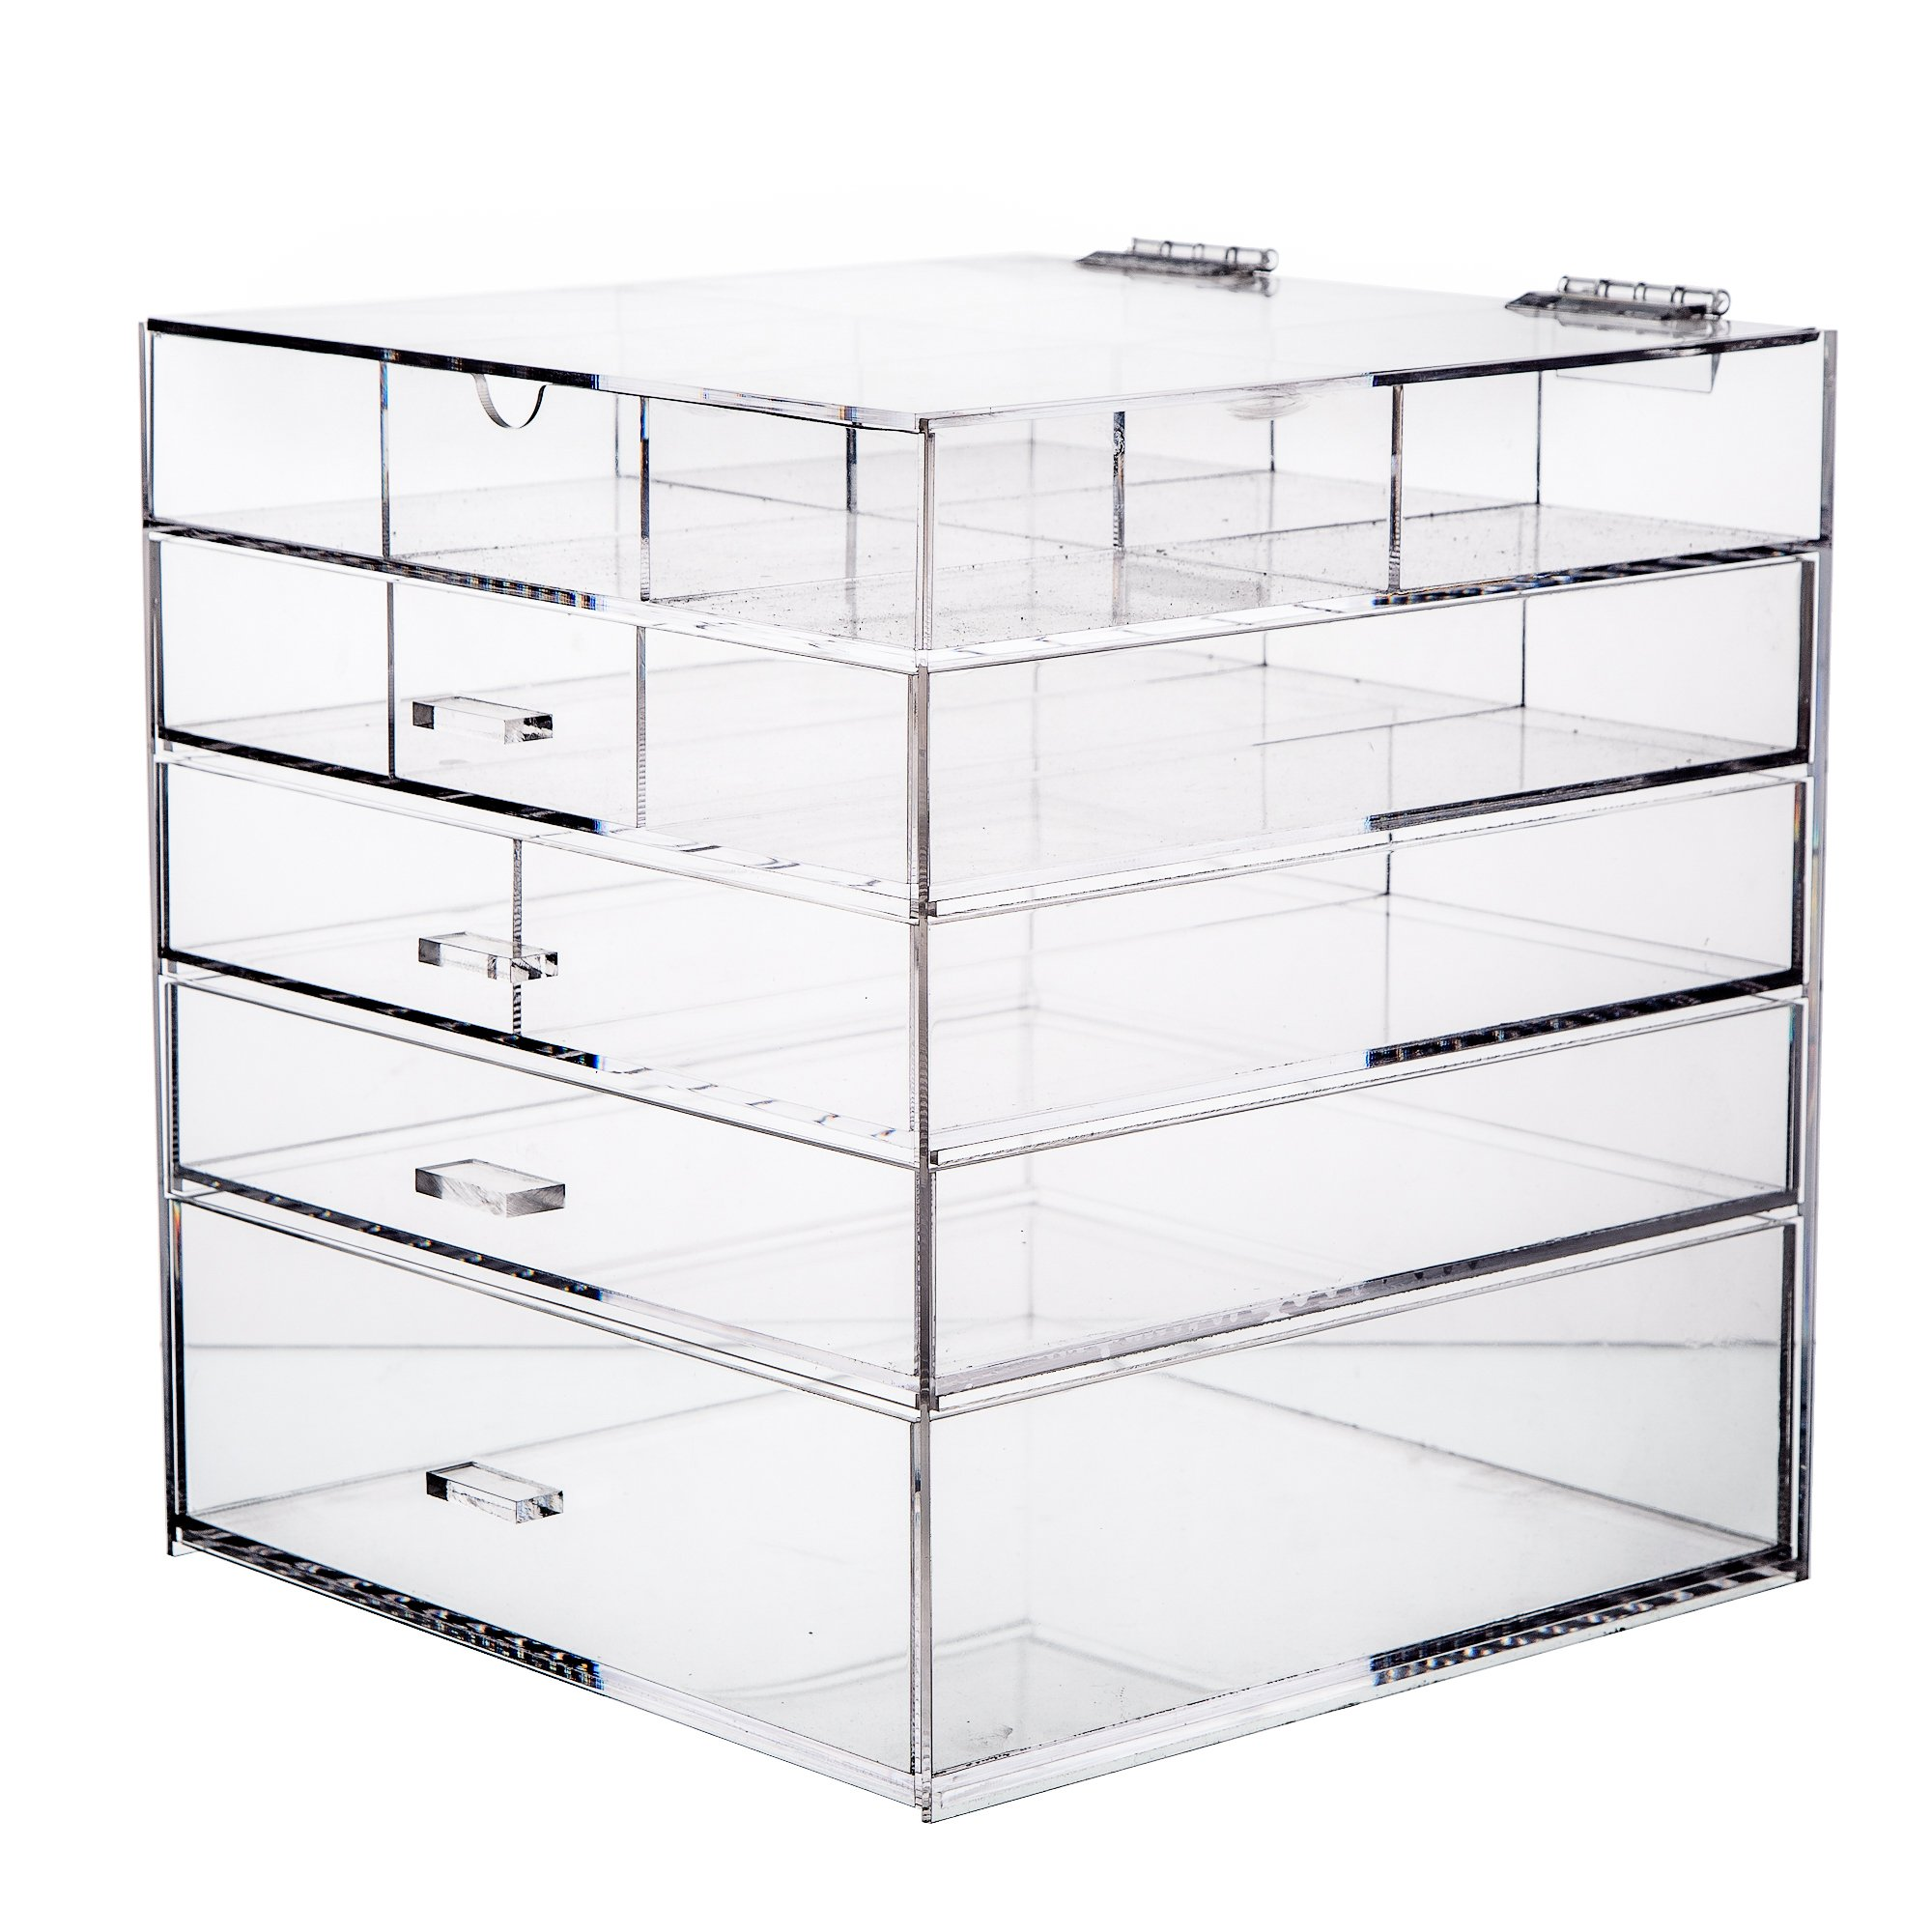 "CDM product Cq acrylic Large 5 Tier Drawer Acrylic Makeup Organizer 10""x10""x11"",Pack of 1 big image"